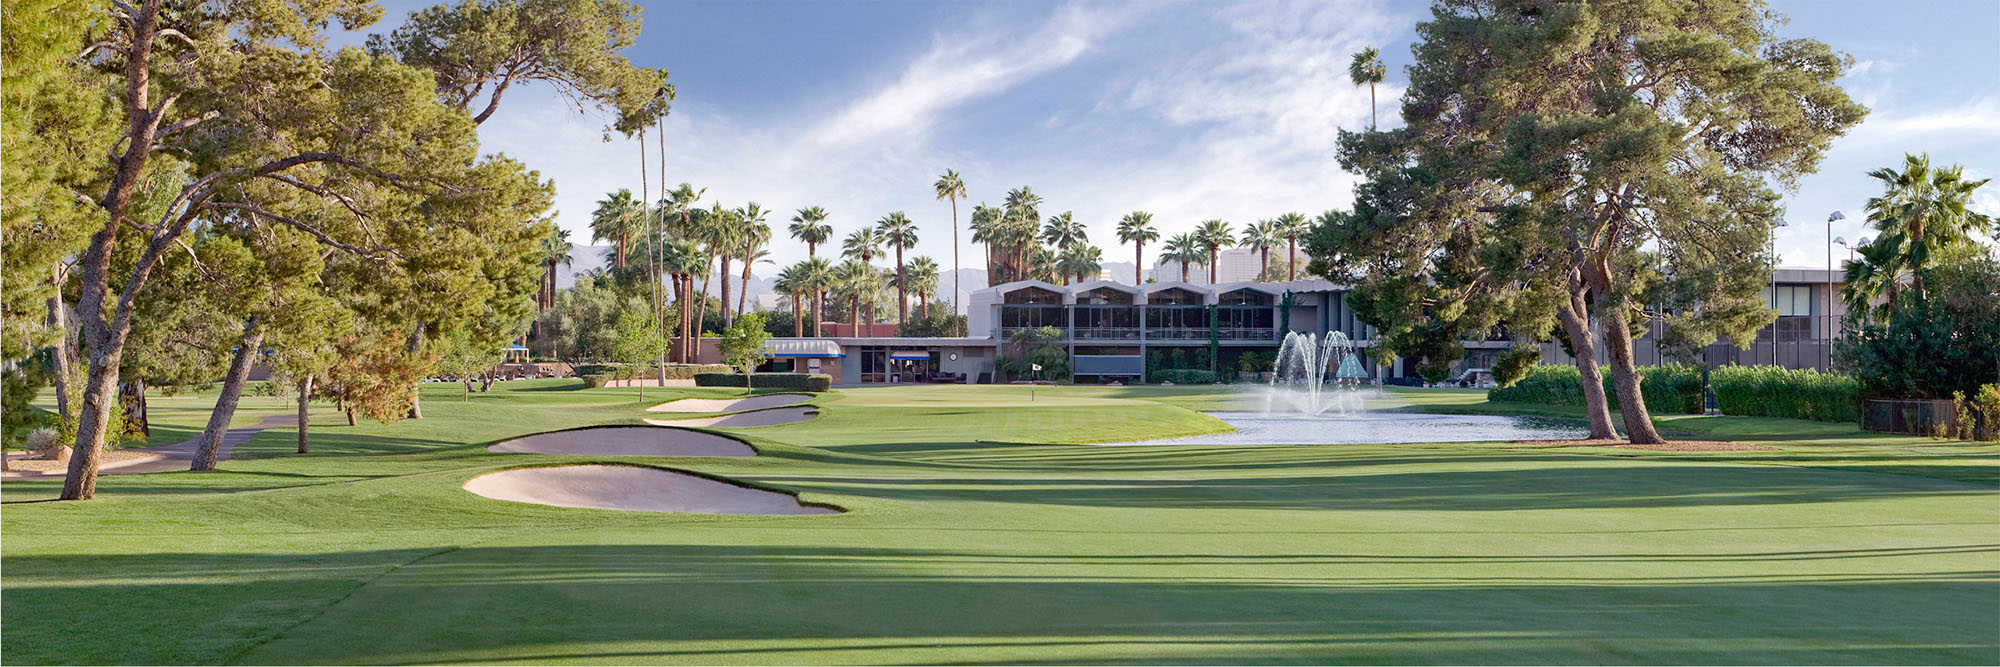 Golf Course Image - Phoenix Country Club No. 18